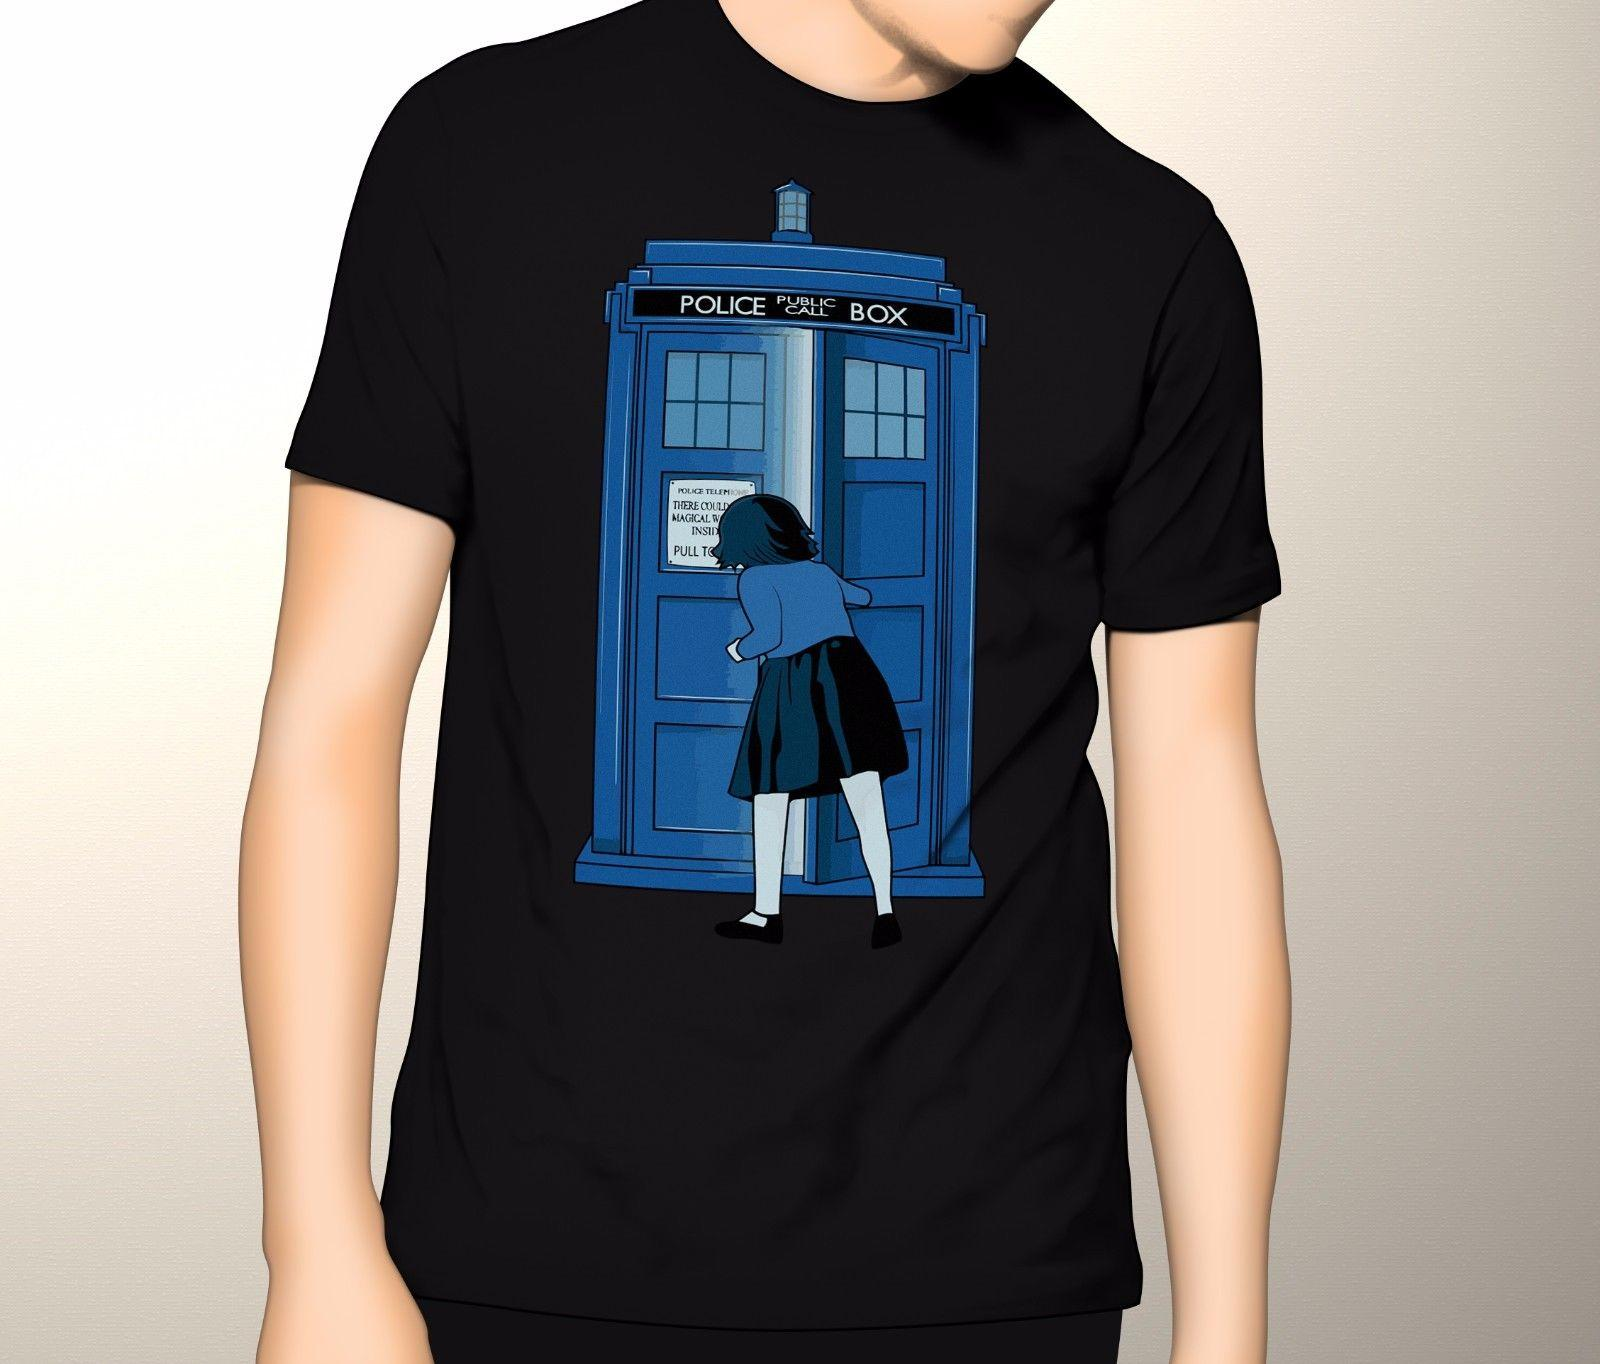 c9ce62d81 Doctor Who Shirt,